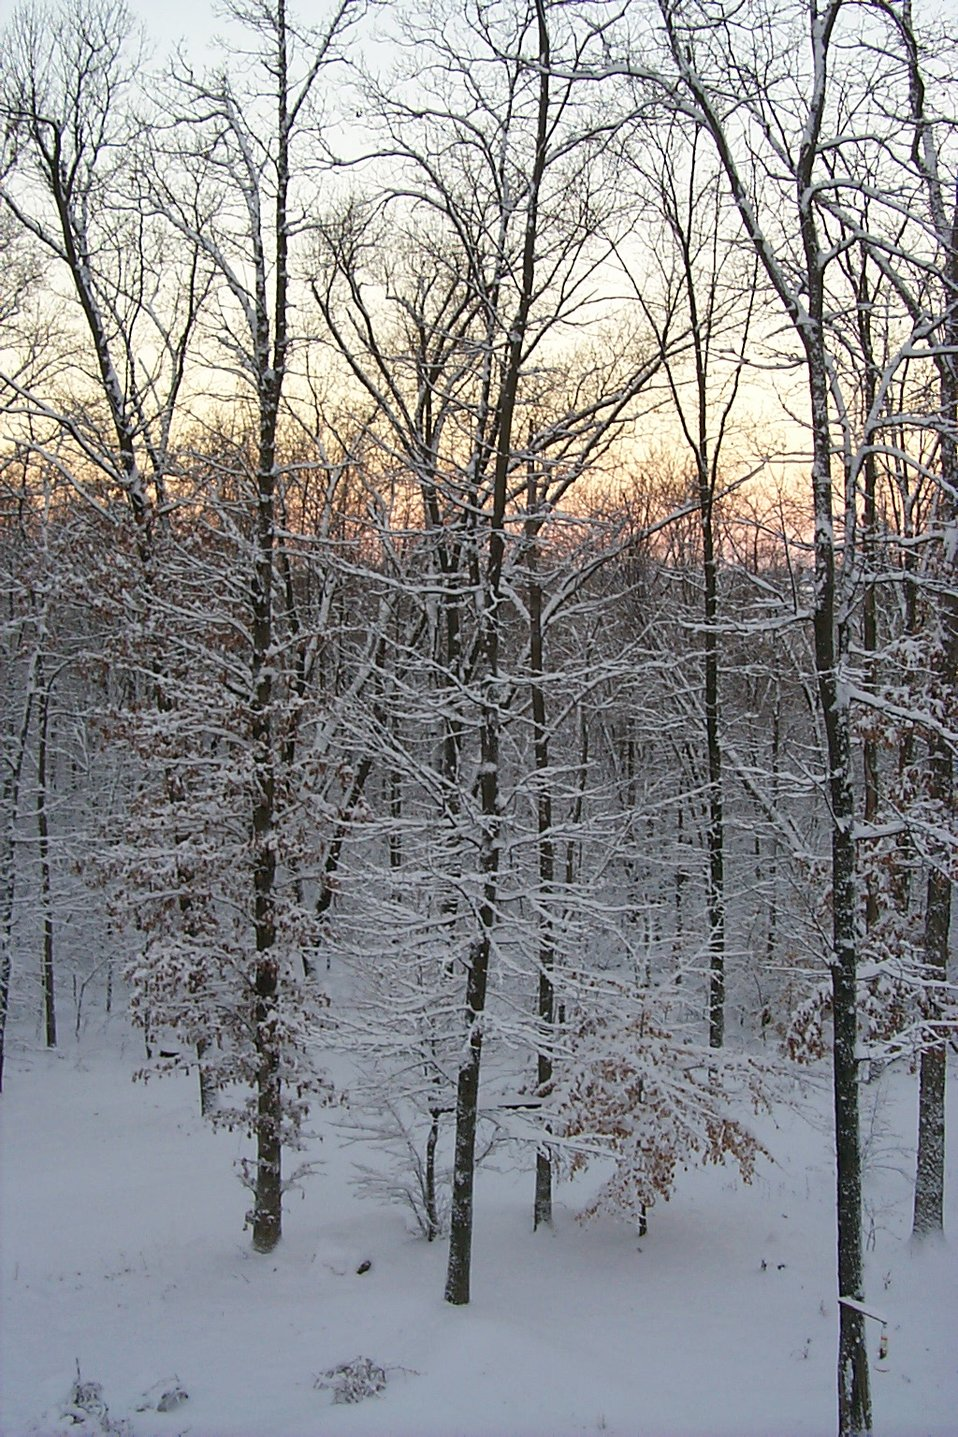 Snowy trees at break of day in the Harpers Ferry area.